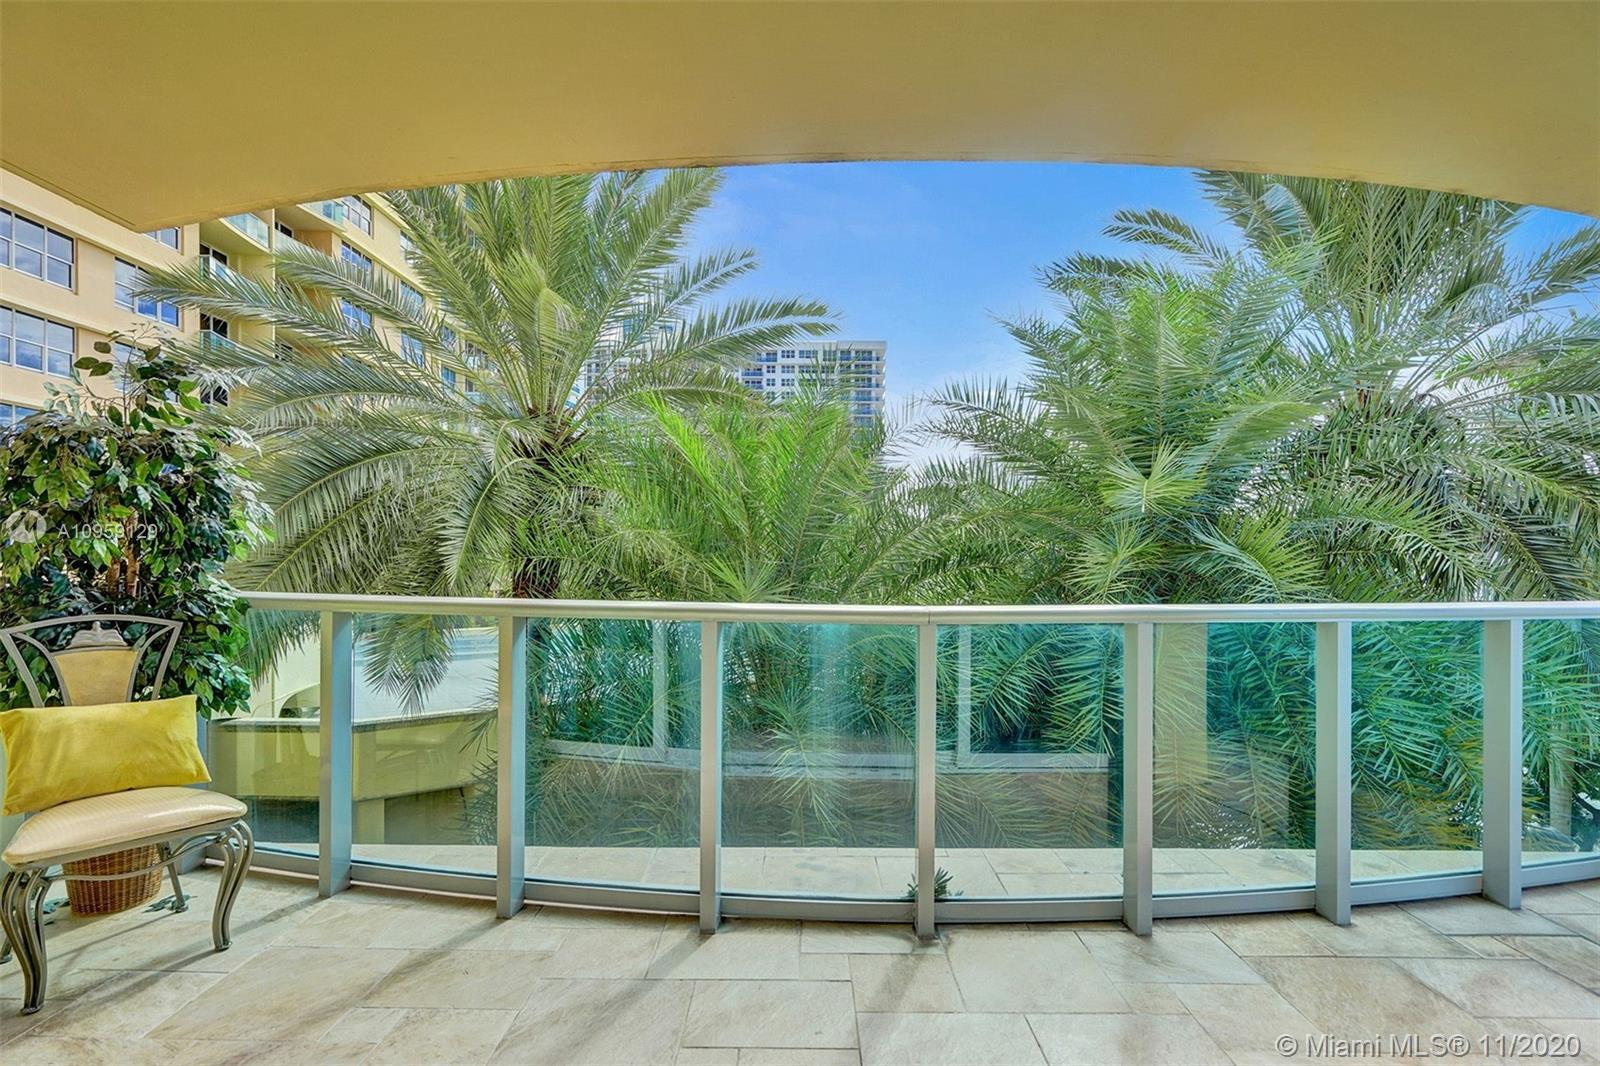 What a Great opportunity to own this bright and spacious Best Priced 2 BD condo with tropical garden